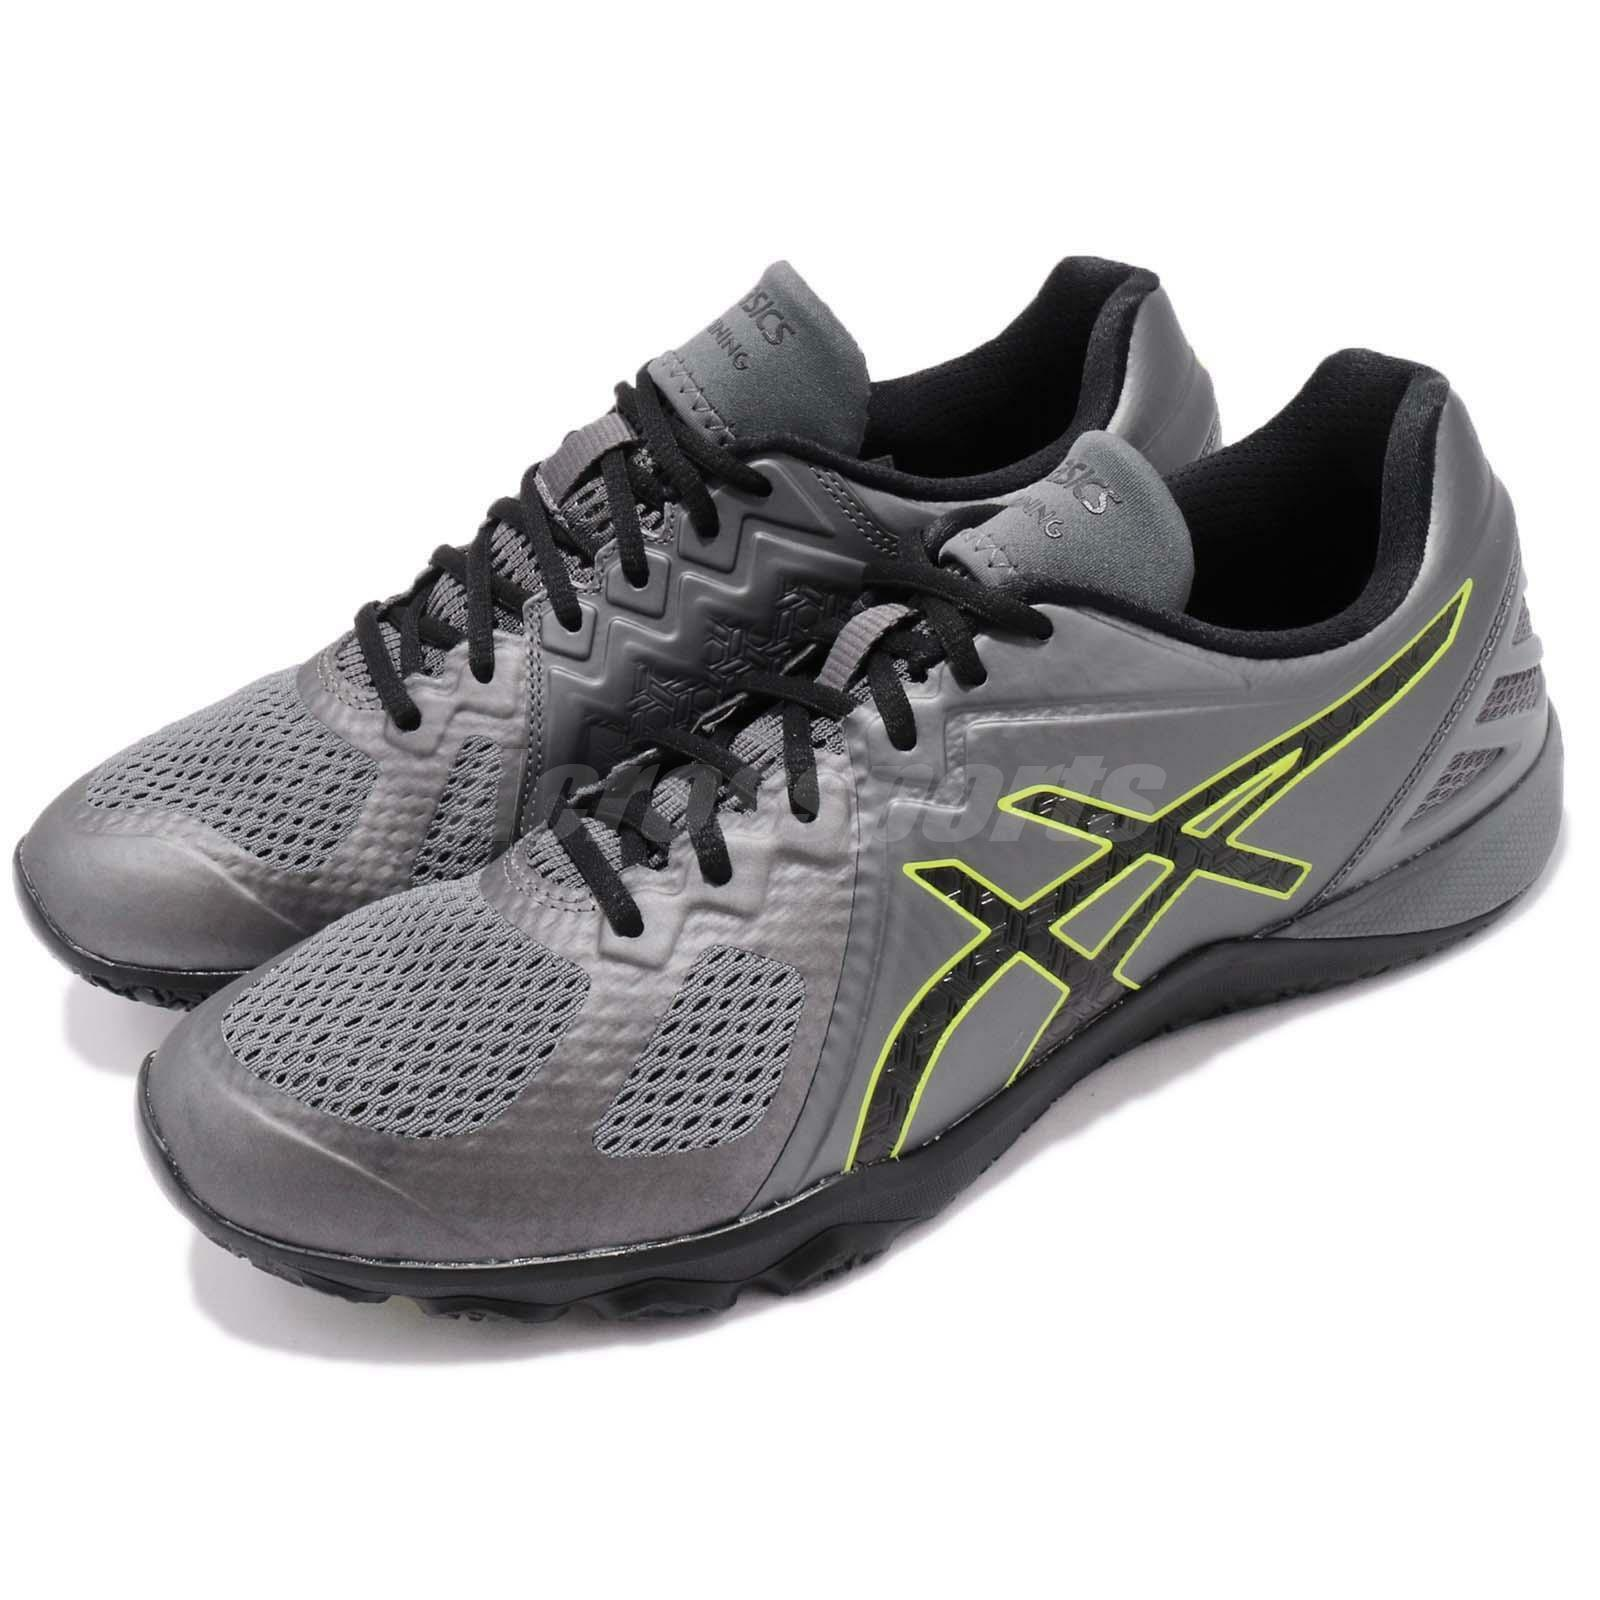 Asics Conviction X Carbon grigio nero verde Mens Cross Training scarpe S703N-9790